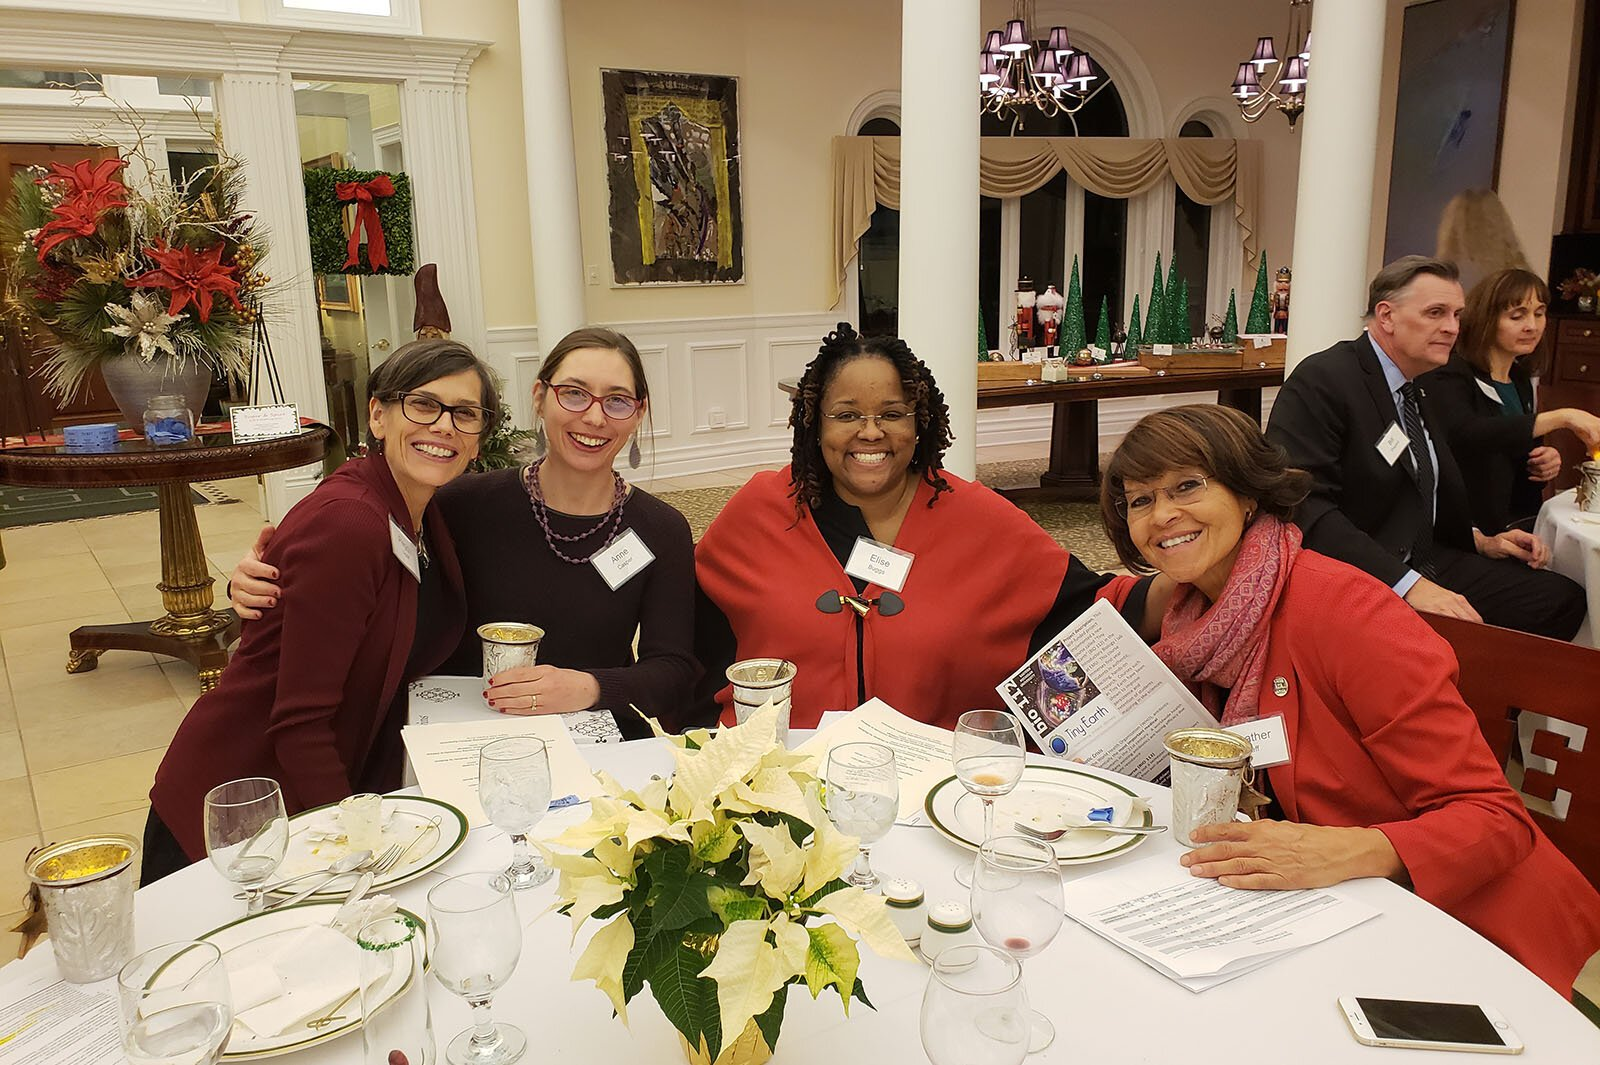 Women in Philanthropy members Peggy Liggit, Anne Casper, Elise Buggs, and Heather Neff at the group's fall 2019 meeting.